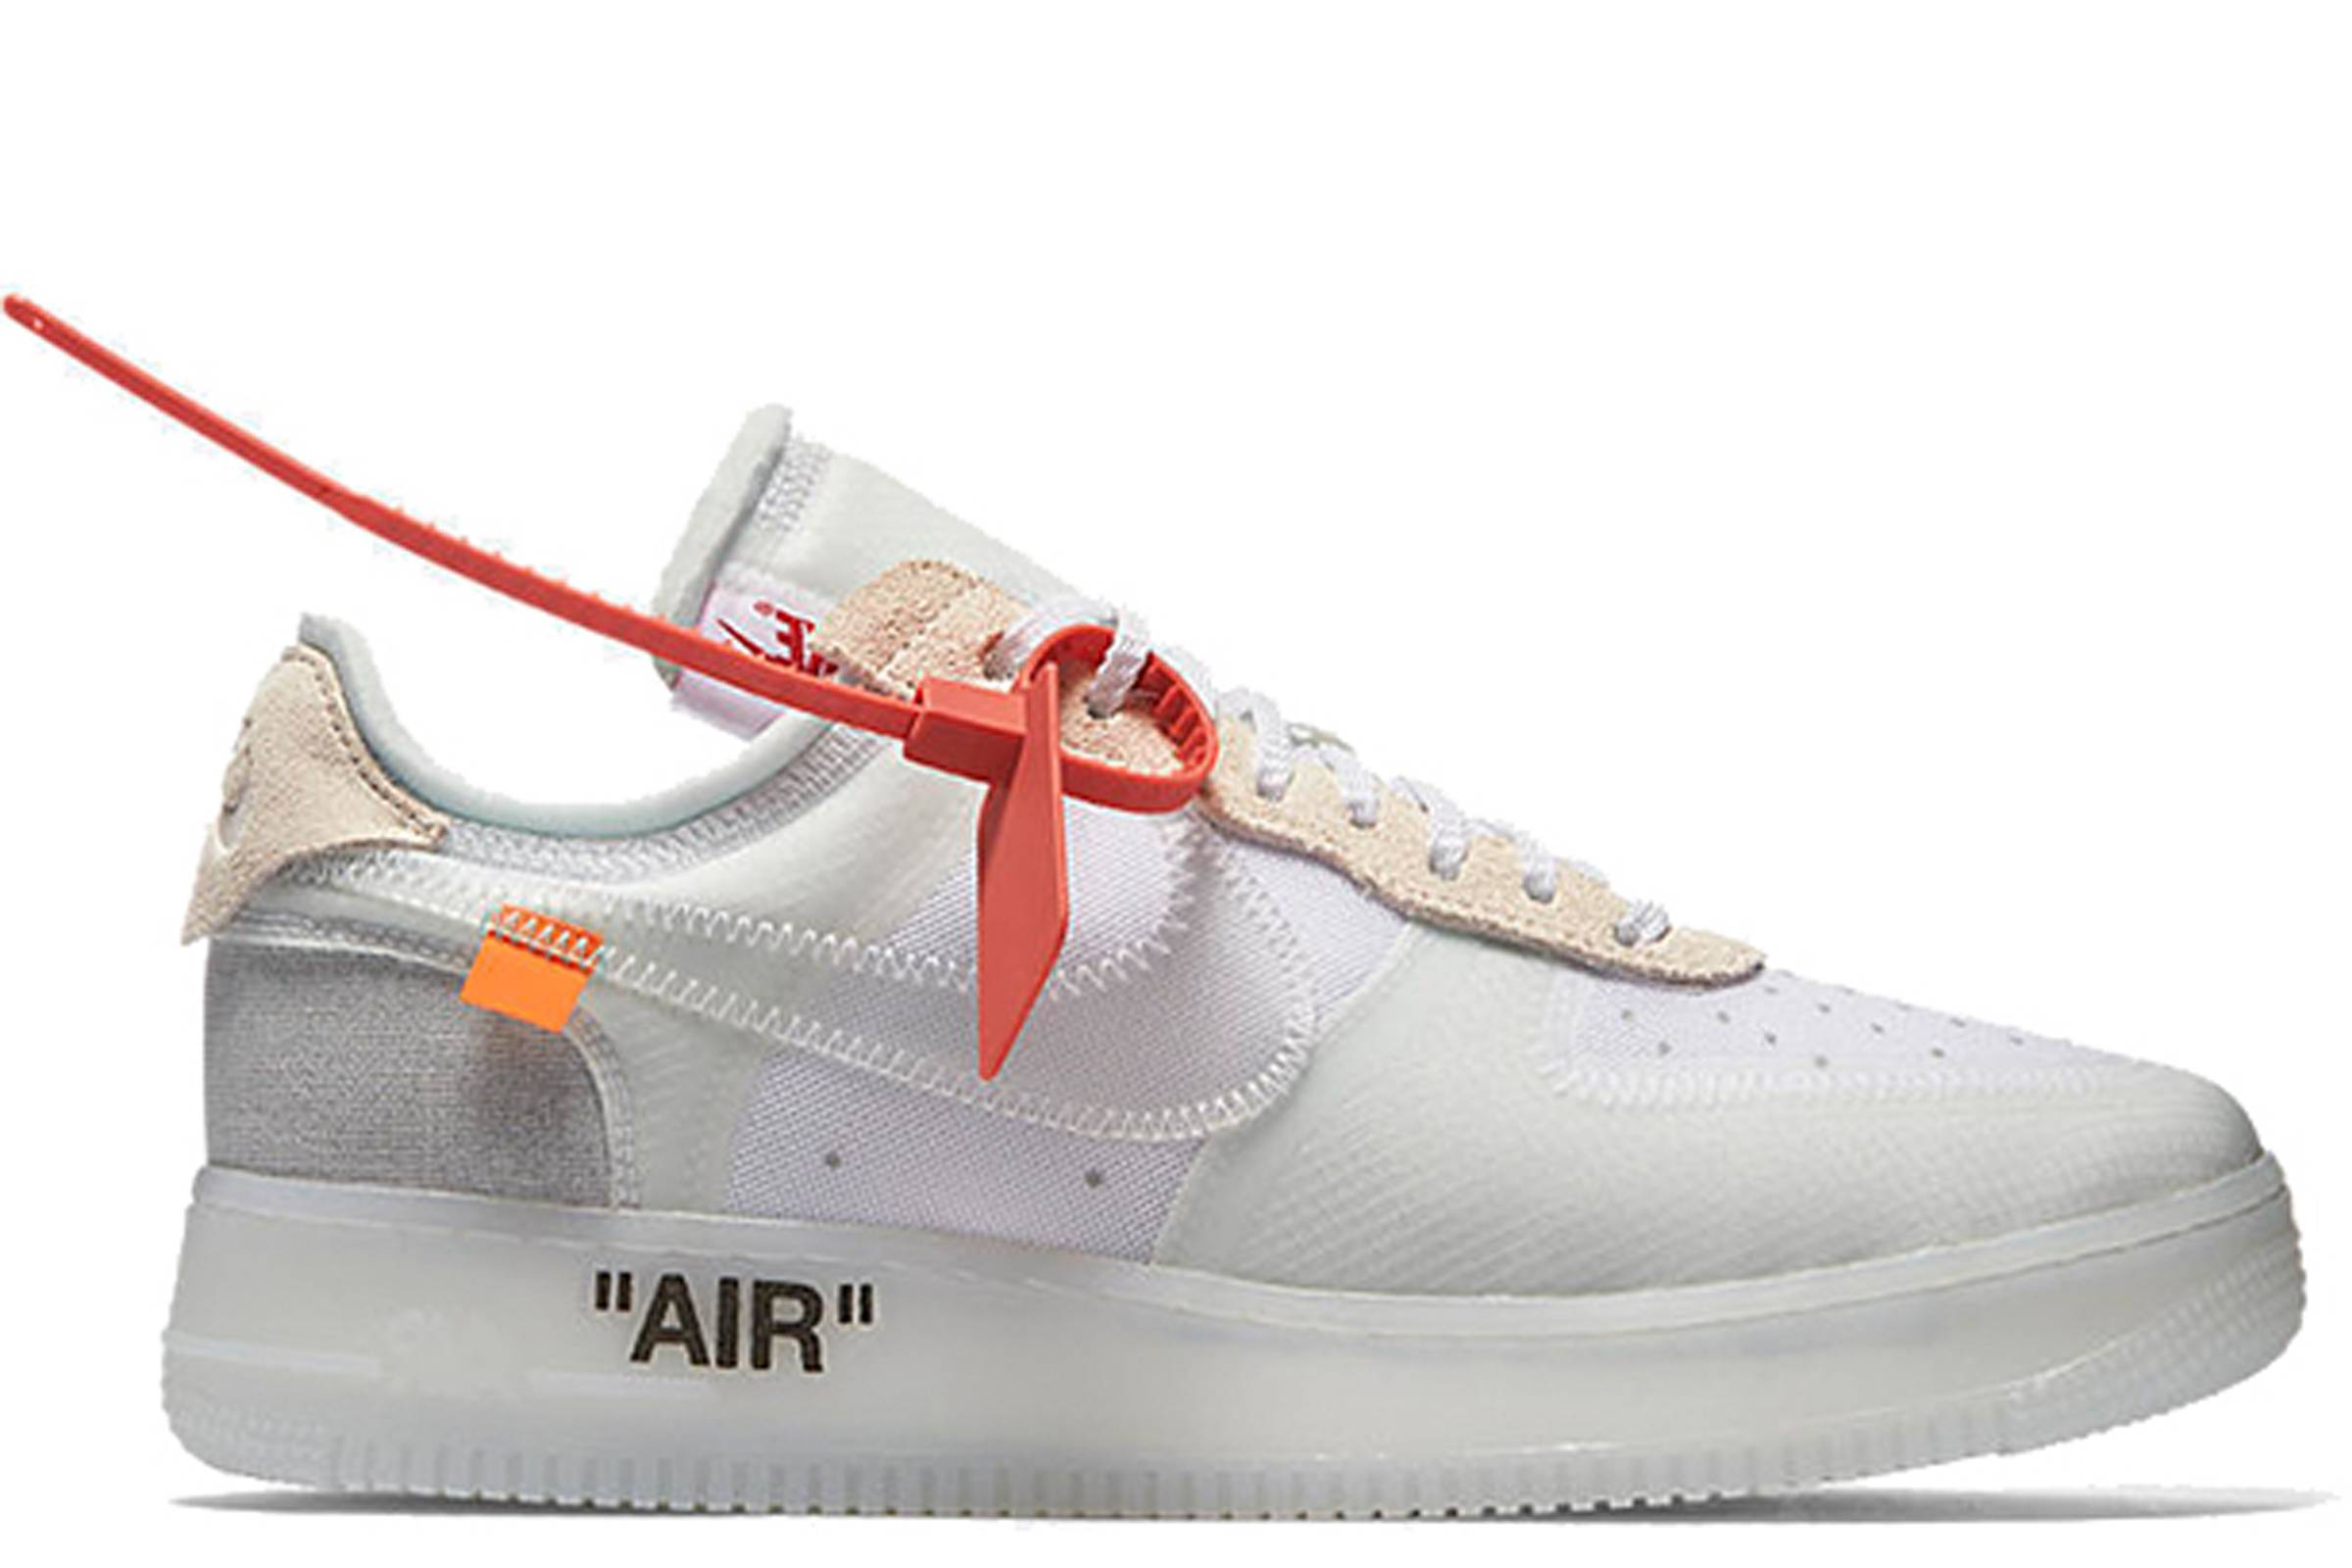 size 40 814c5 3d0b1 Off-White x Nike Air Force 1